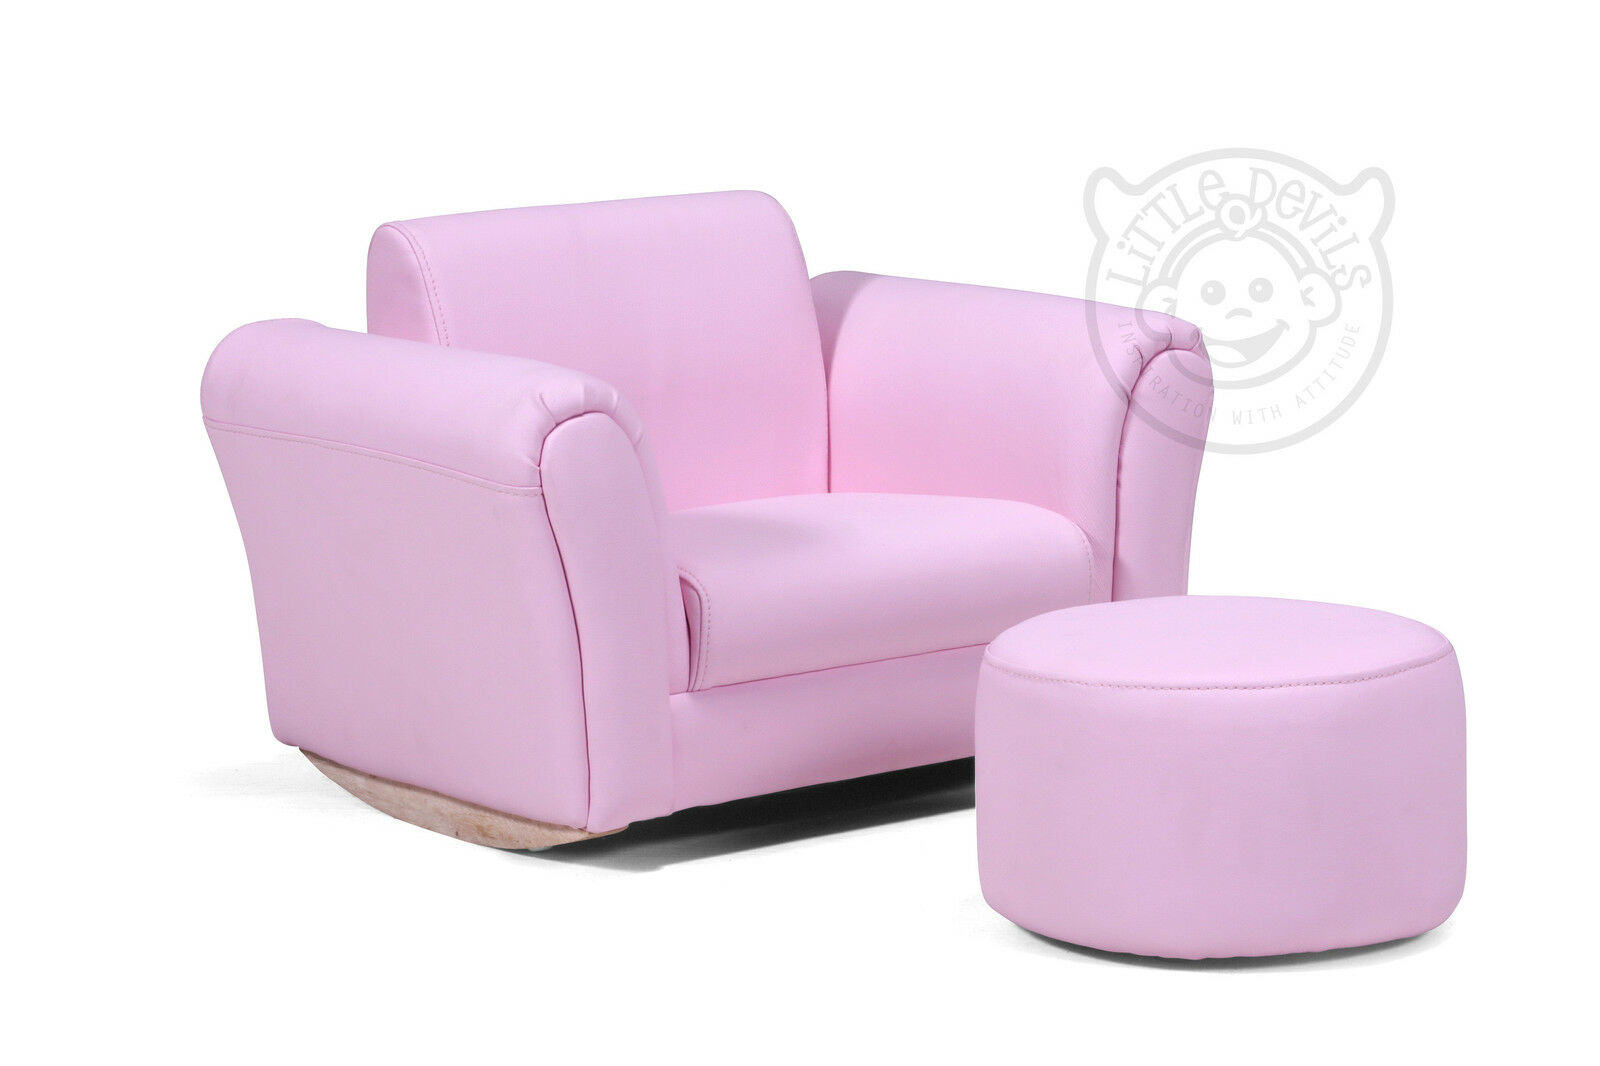 Pink lazybones kids rocking chair seat armchair sofa for for Pink kids chair